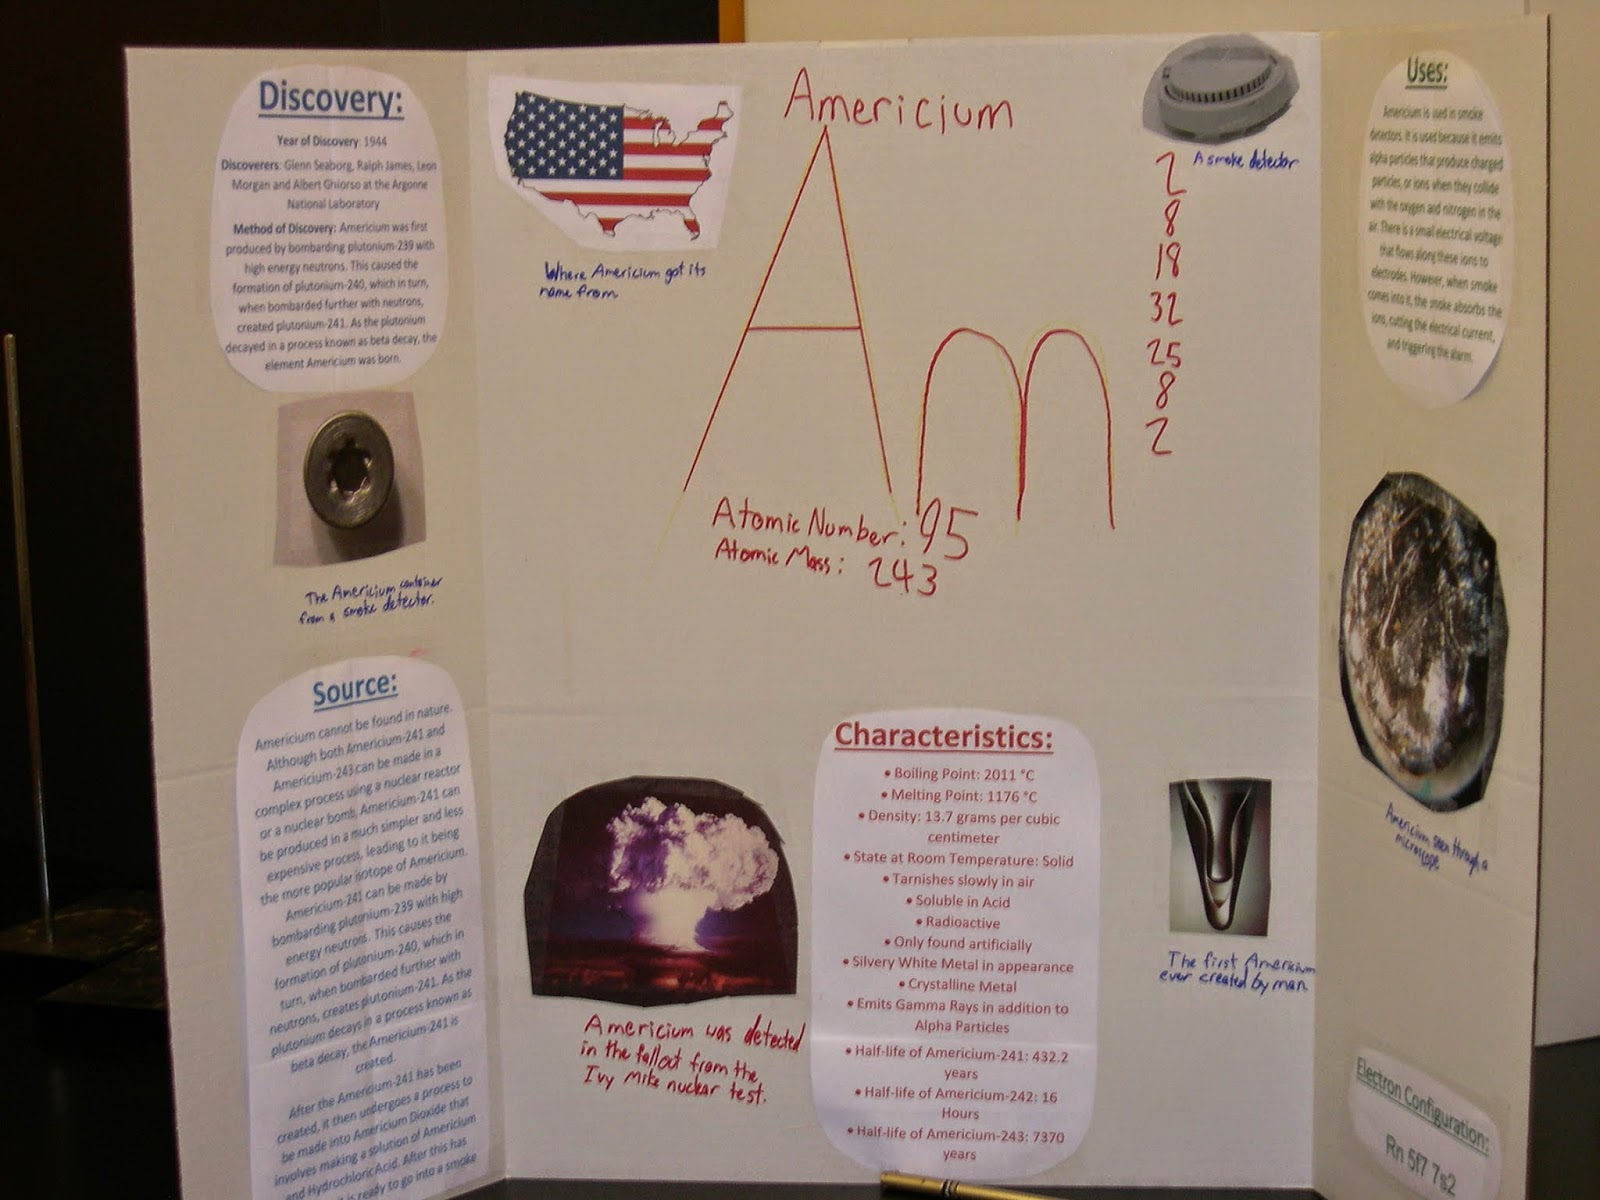 Bronxville Hs Core Chemistry Element Poster Project Atoms Diagrams Electron Configurations Of Elements And Produce A Triptych 3 Panel Describing The Discovery Uses Sources Characteristics Bohr Diagram Configuration